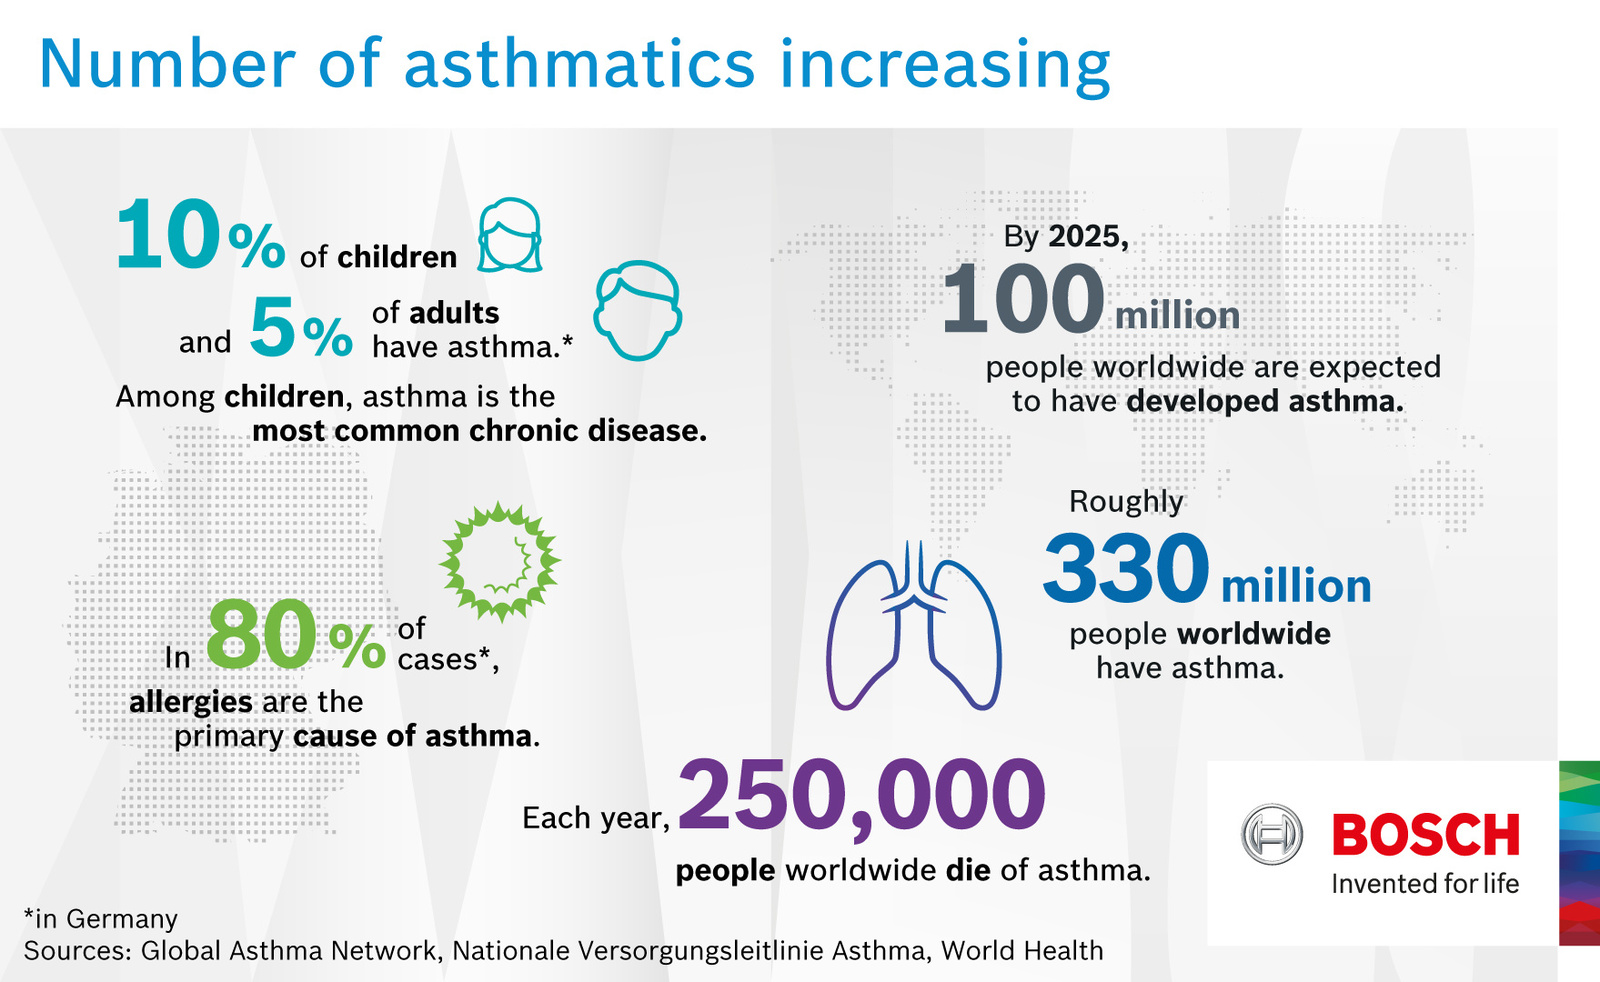 Number of asthmatics increasing